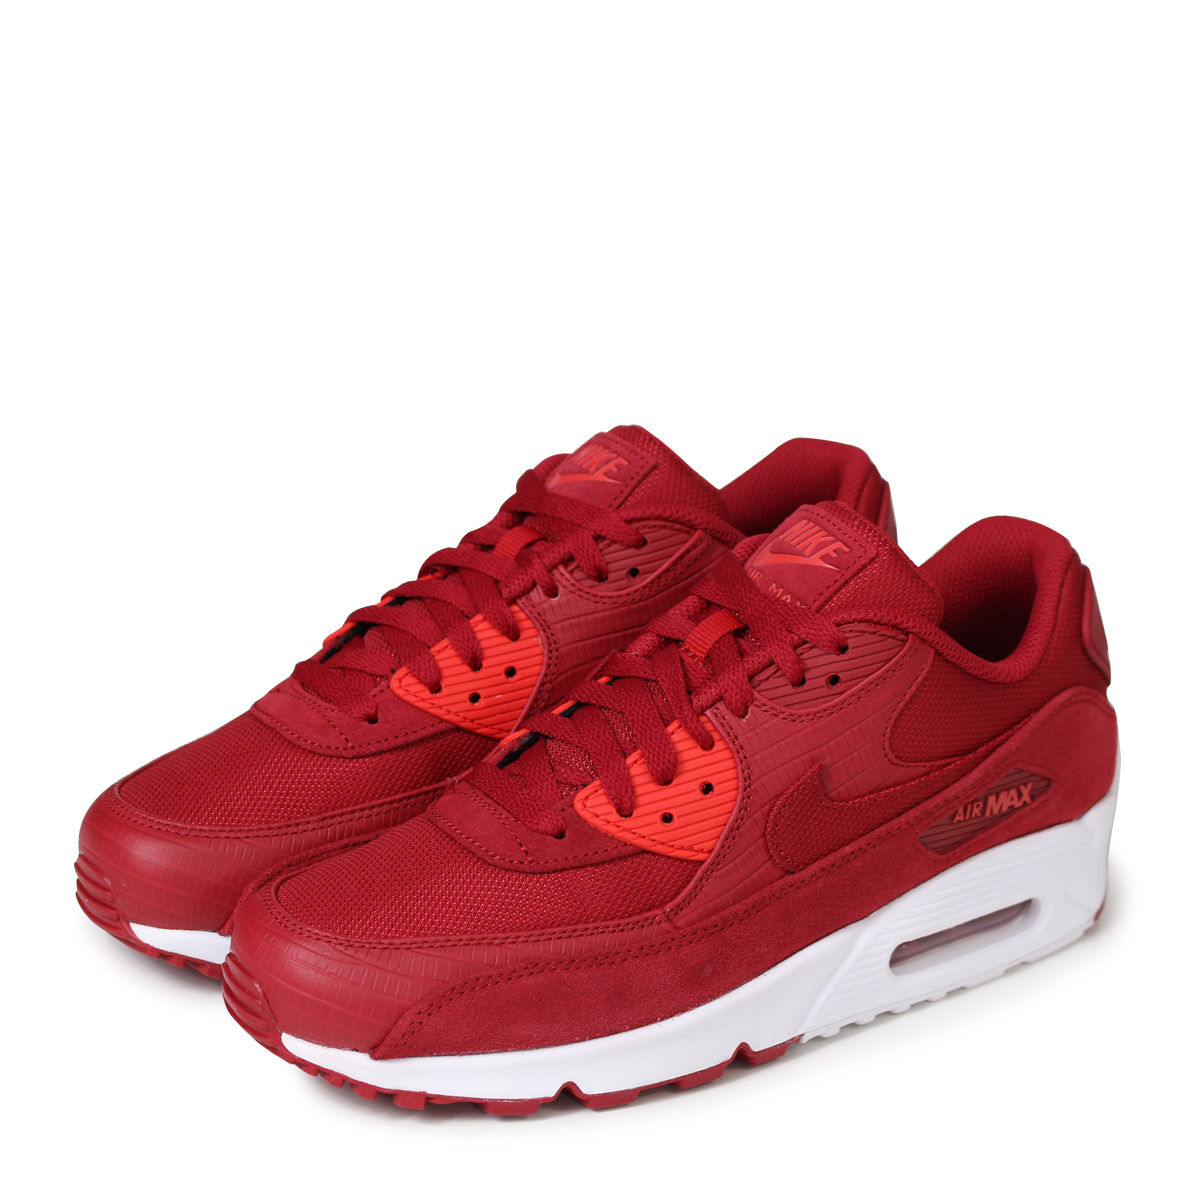 hot sale online fe367 429fb NIKE AIR MAX 90 PREMIUM Kie Ney AMAX 90 sneakers men 700,155-602 red [load  planned Shinnyu load in reservation product 5/12 containing] [185]